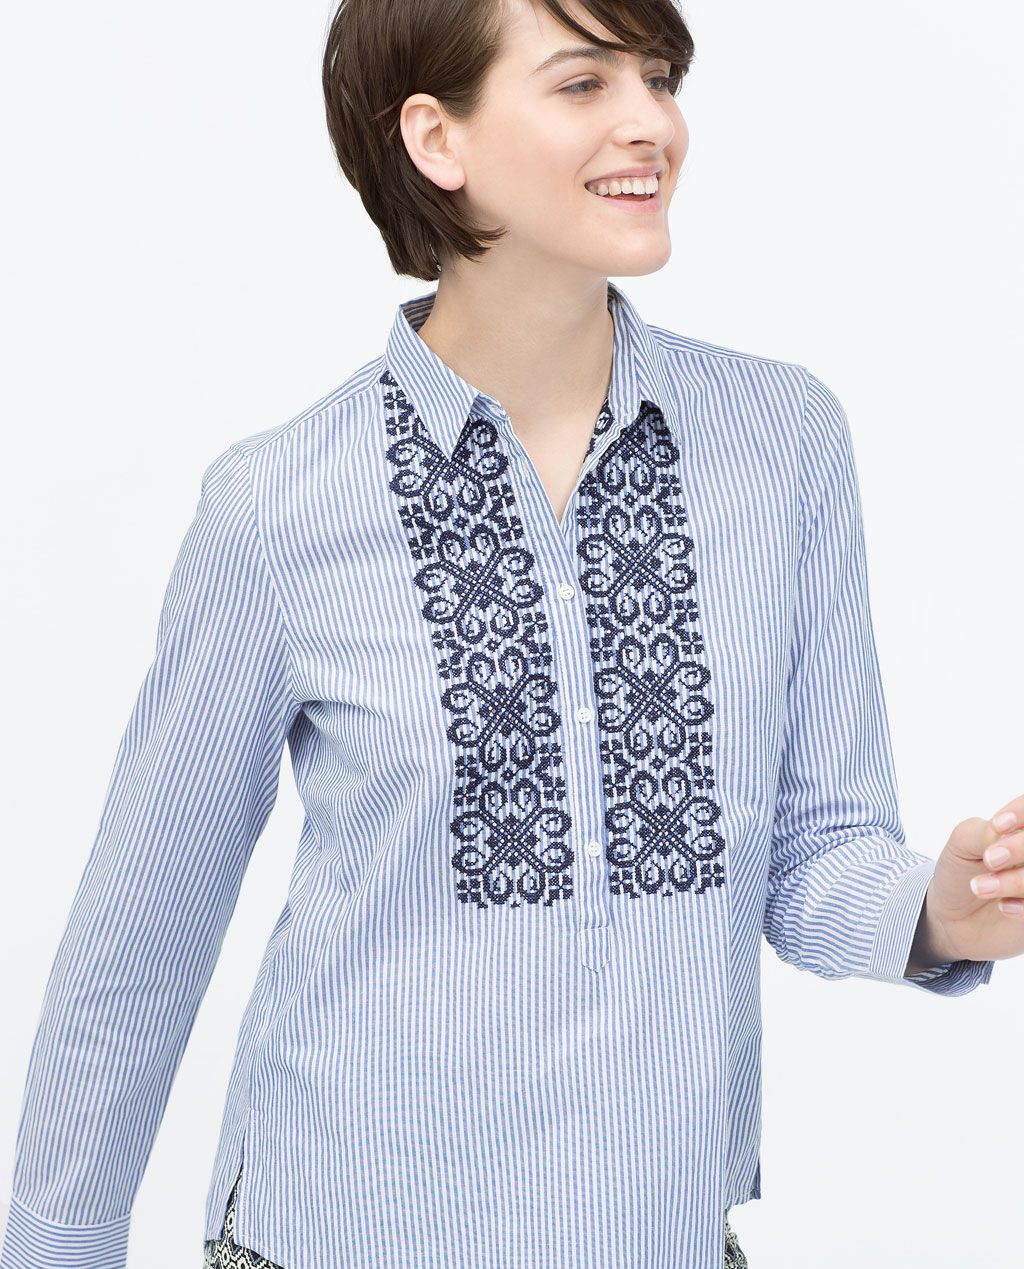 Zara Collection Ss15 Embroidered Bib Striped Blouse Moda Fashion Striped Blouse Fashion